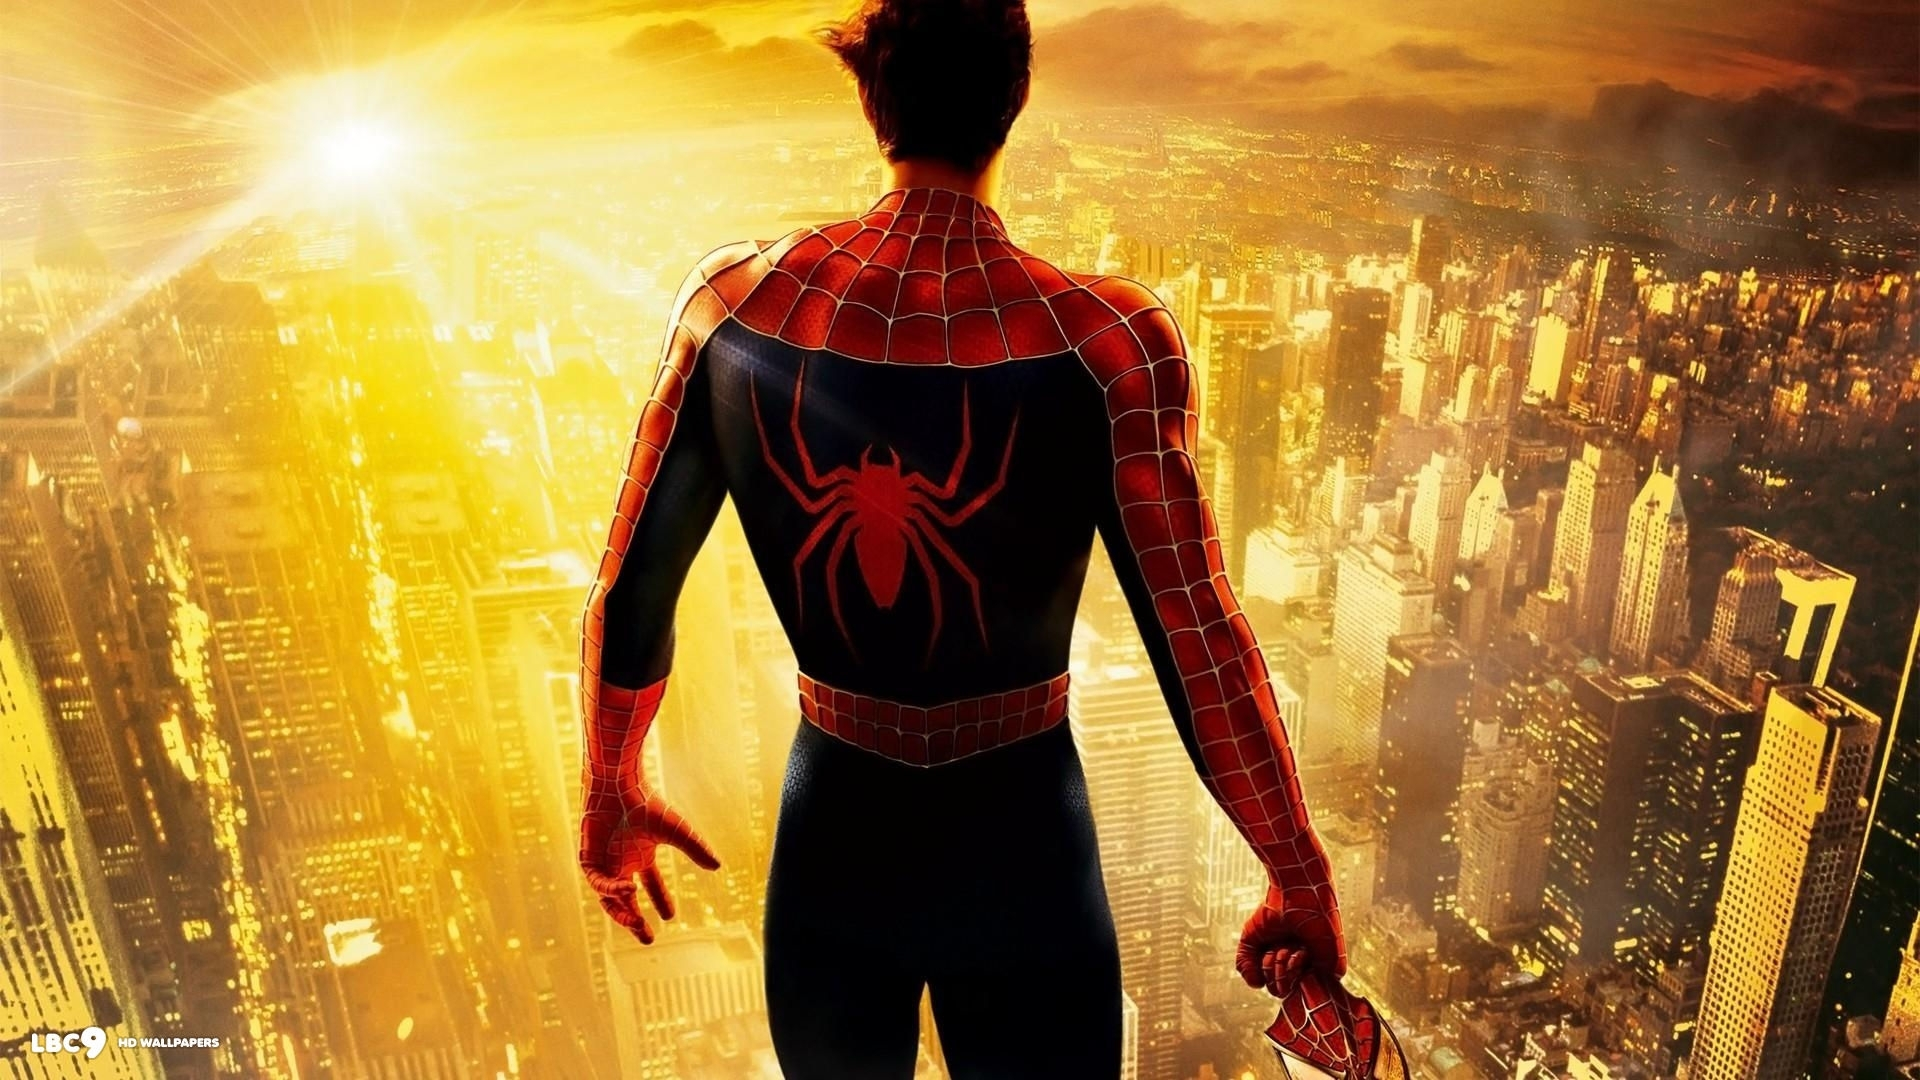 spider man 2 wallpaper 4/5 | movie hd backgrounds